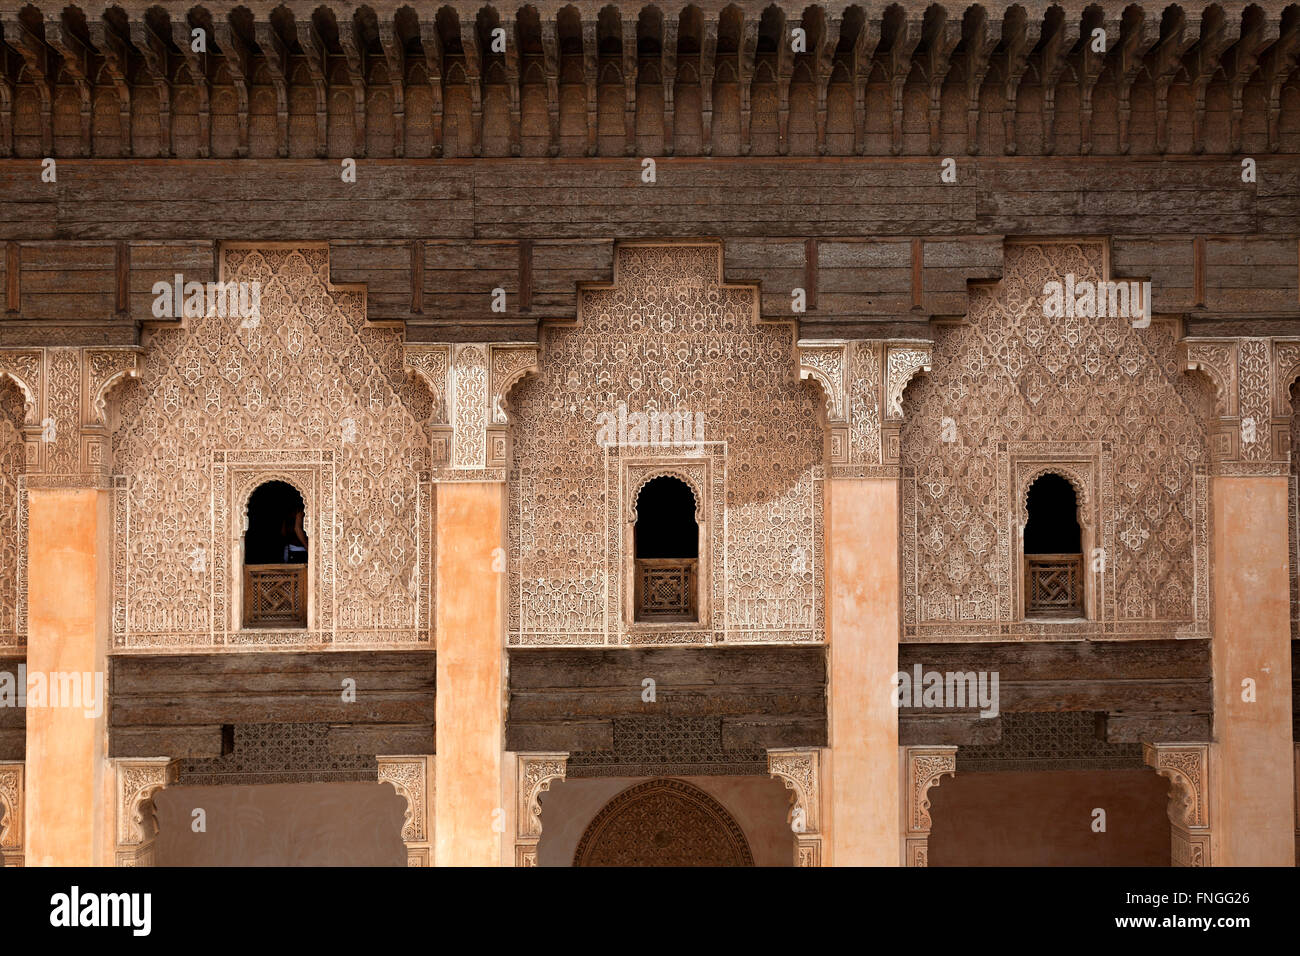 Student rooms in the Medersa ben Youssef, Marrakech, Morocco - Stock Image